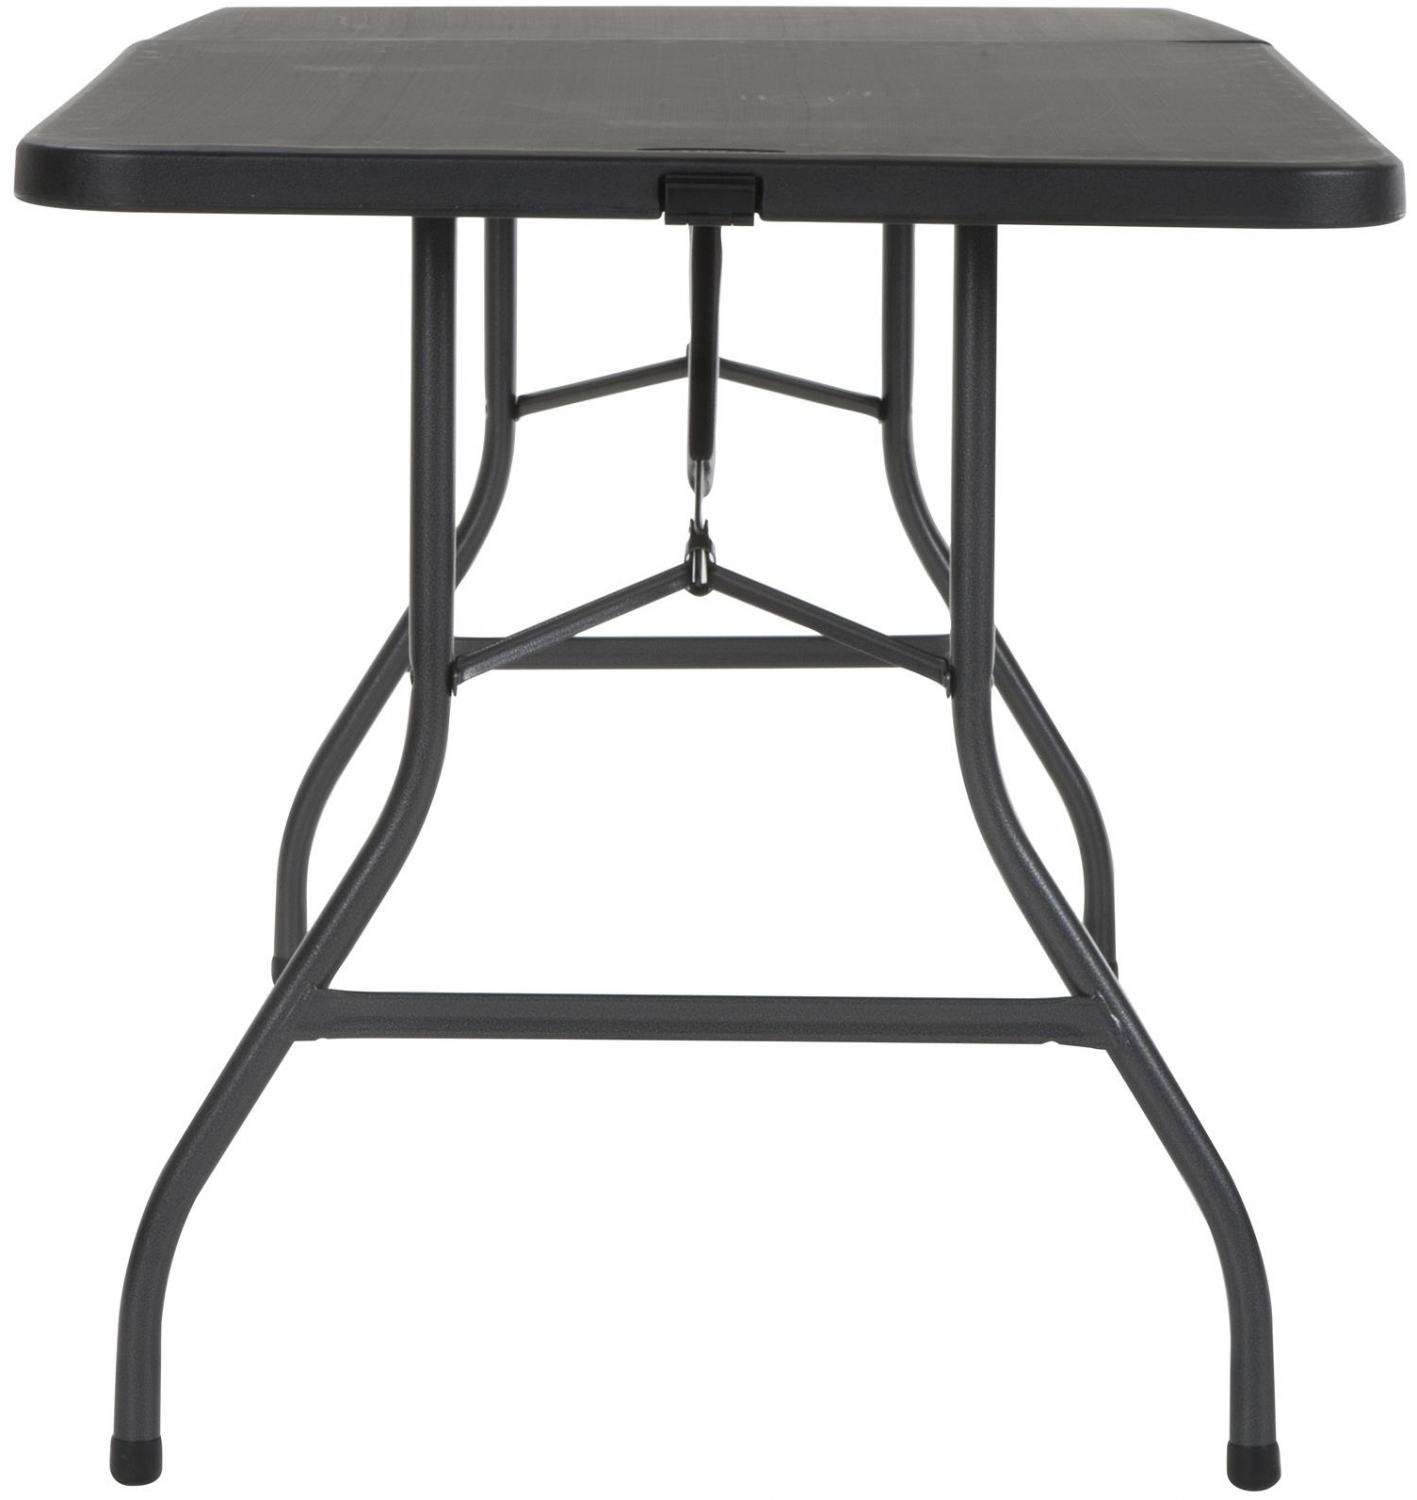 6 Foot Centerfold Folding Table Home Plastic Office